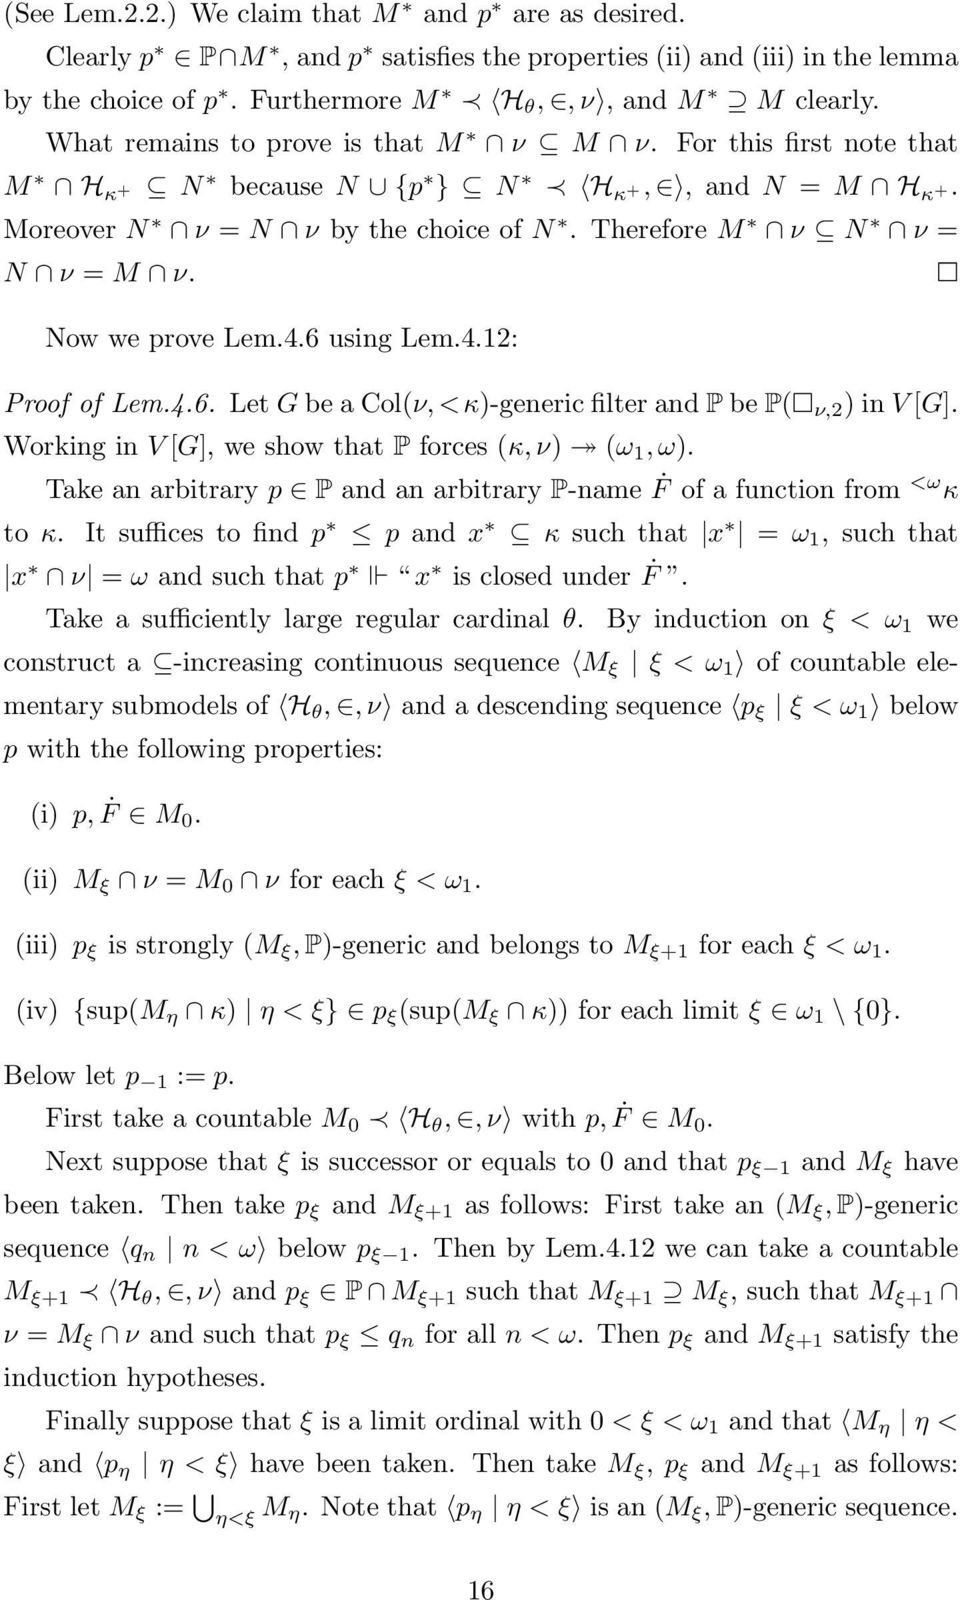 Now we prove Lem.4.6 using Lem.4.12: Proof of Lem.4.6. Let G be a Col(ν, <κ)-generic filter and P be P( ν,2 ) in V [G]. Working in V [G], we show that P forces (κ, ν) (ω 1, ω).